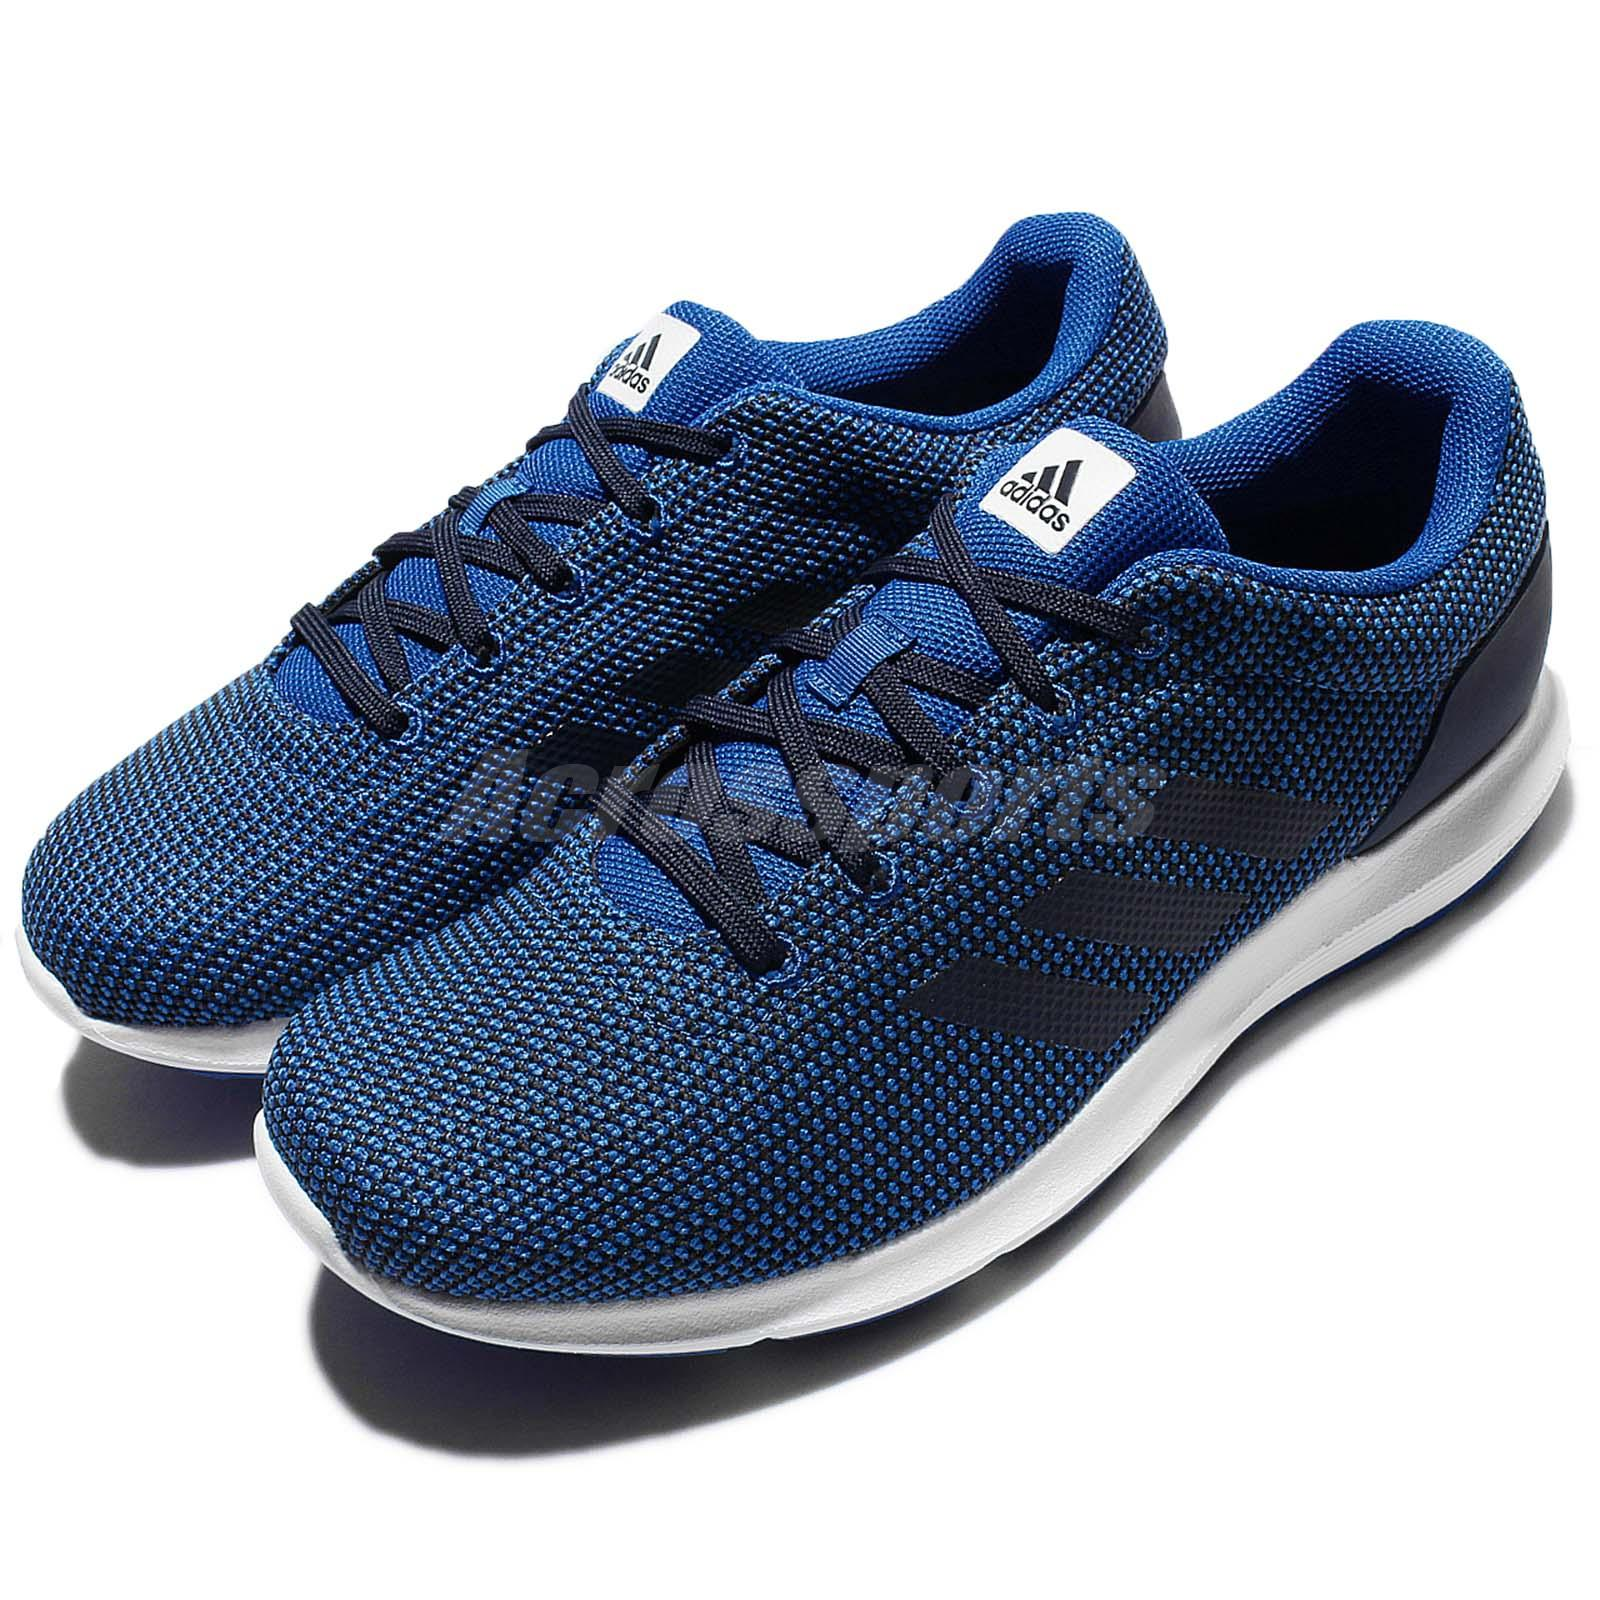 Navy Blue White And Gray Bedroom: Adidas Cosmic M Navy Blue White Mens Running Shoes